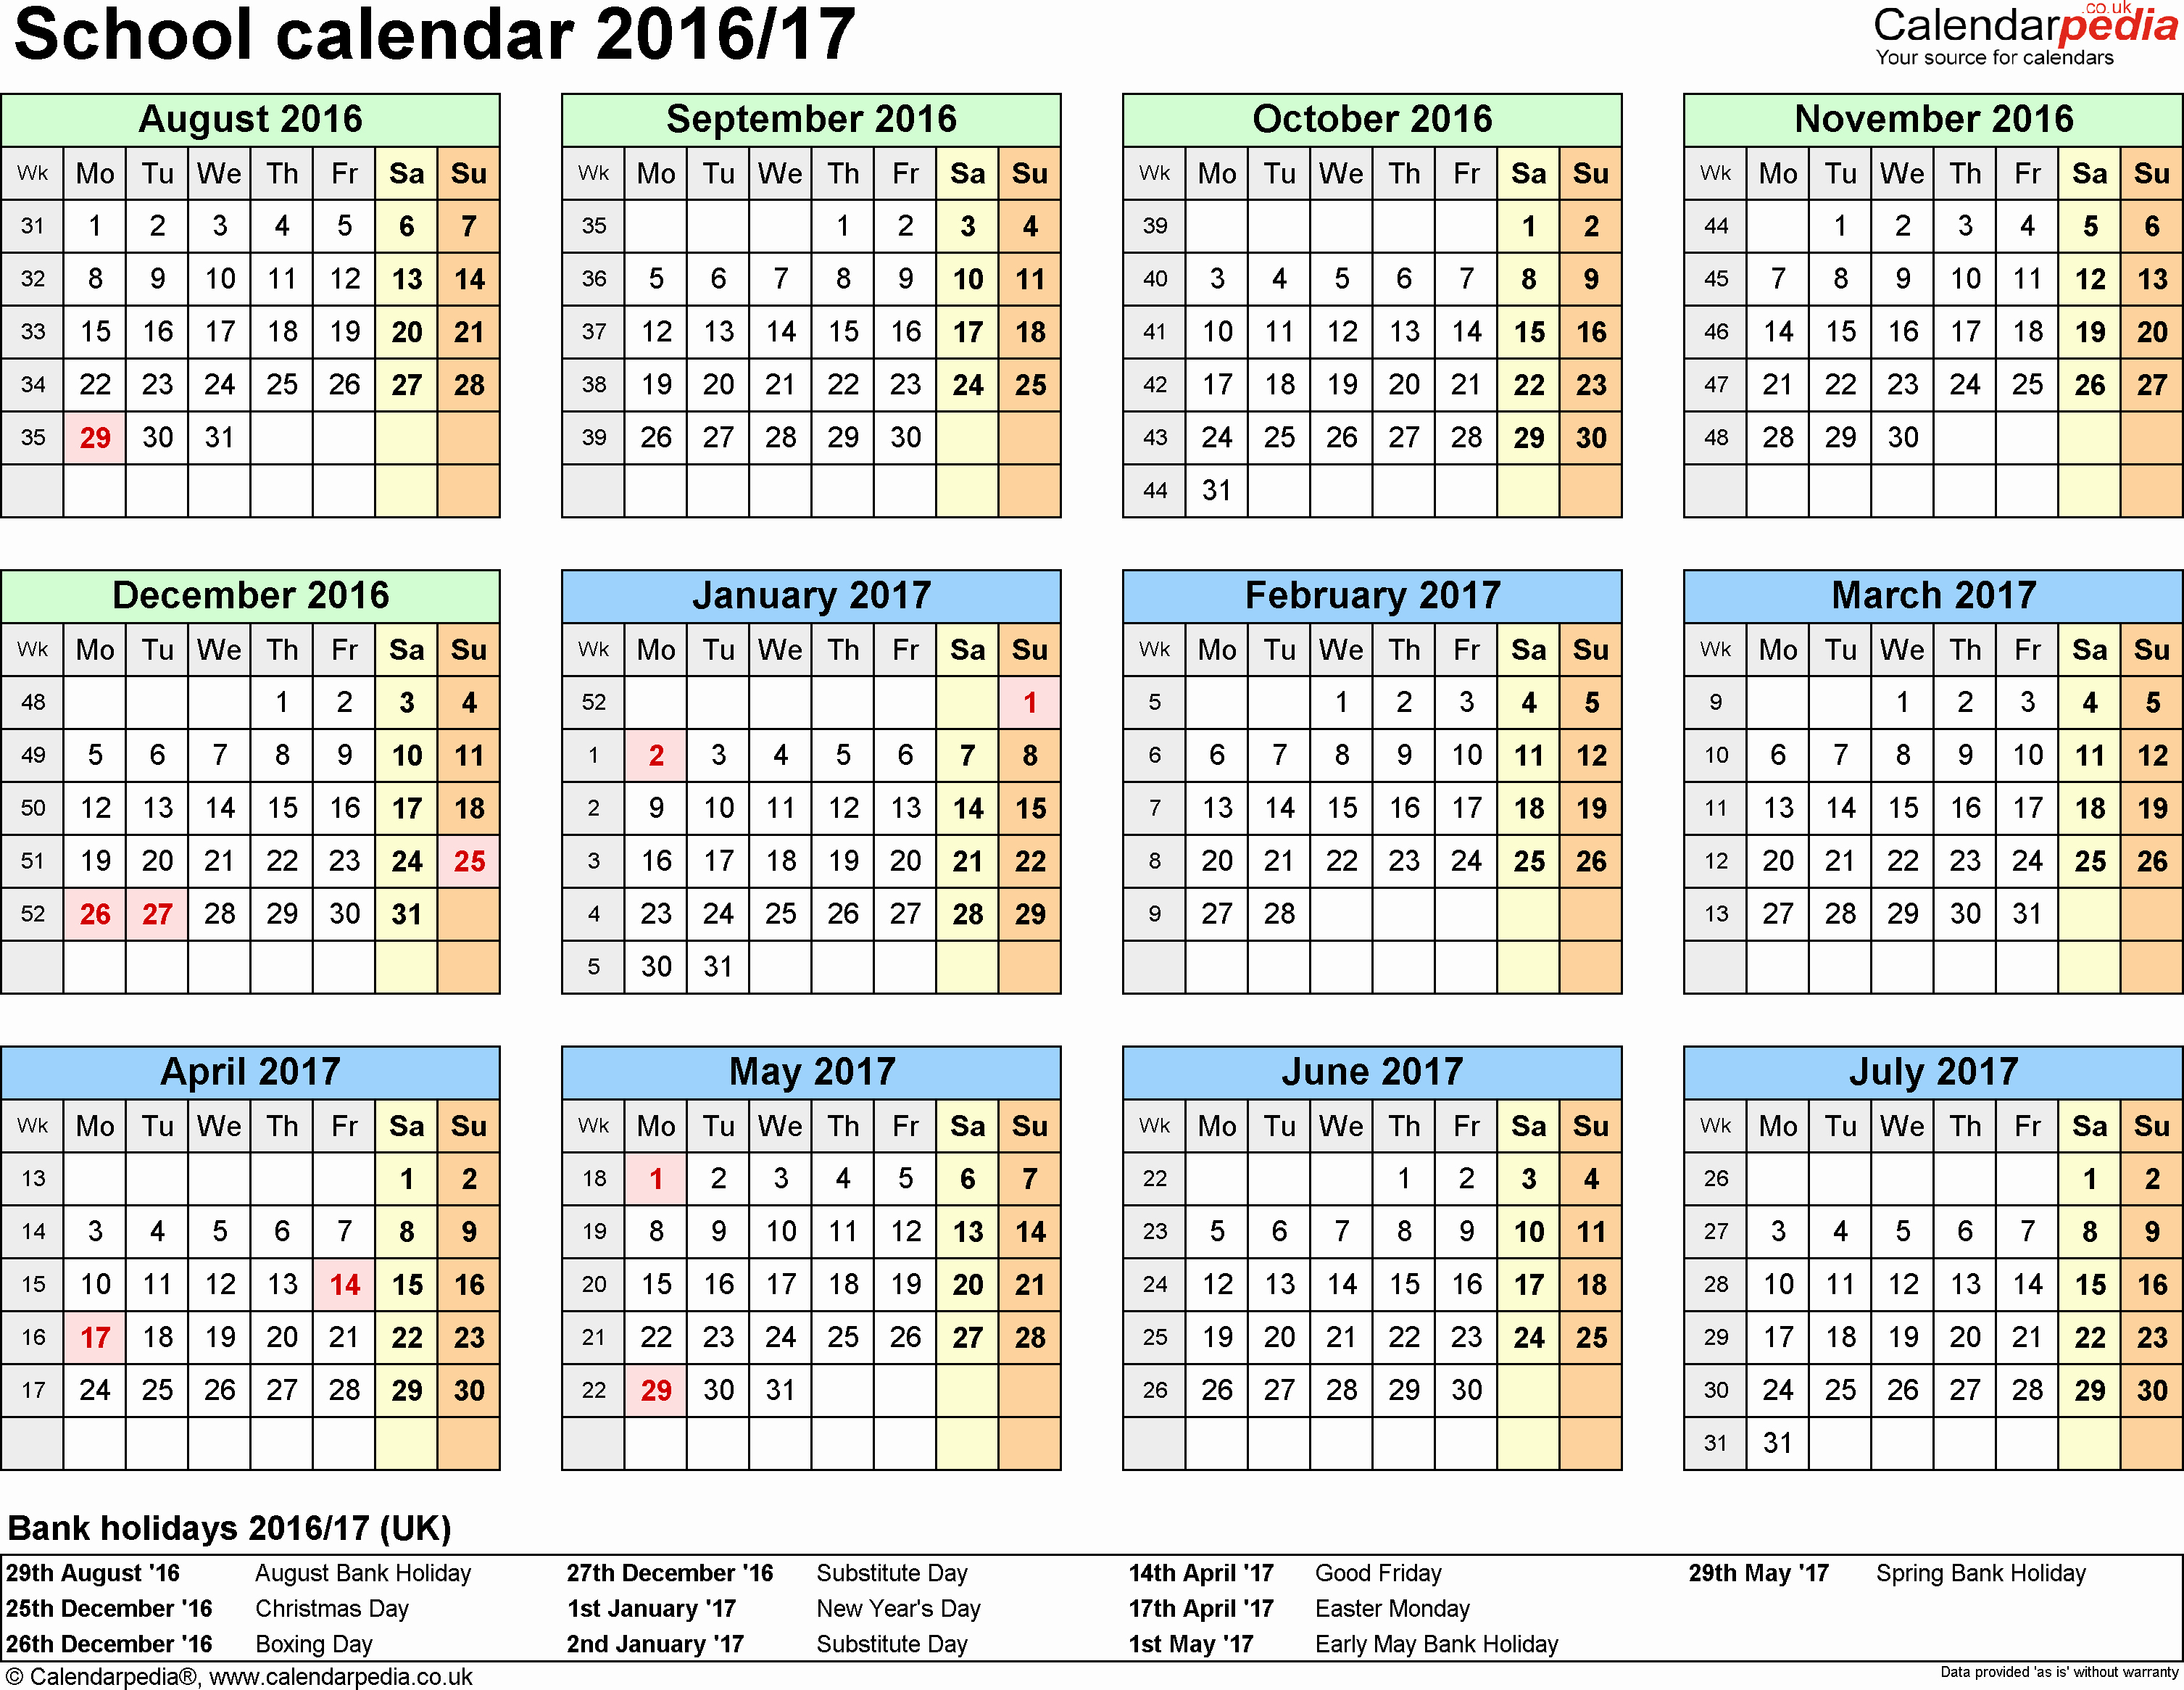 Calendar 2016-17 Template Lovely School Calendars 2016 2017 as Free Printable Word Templates